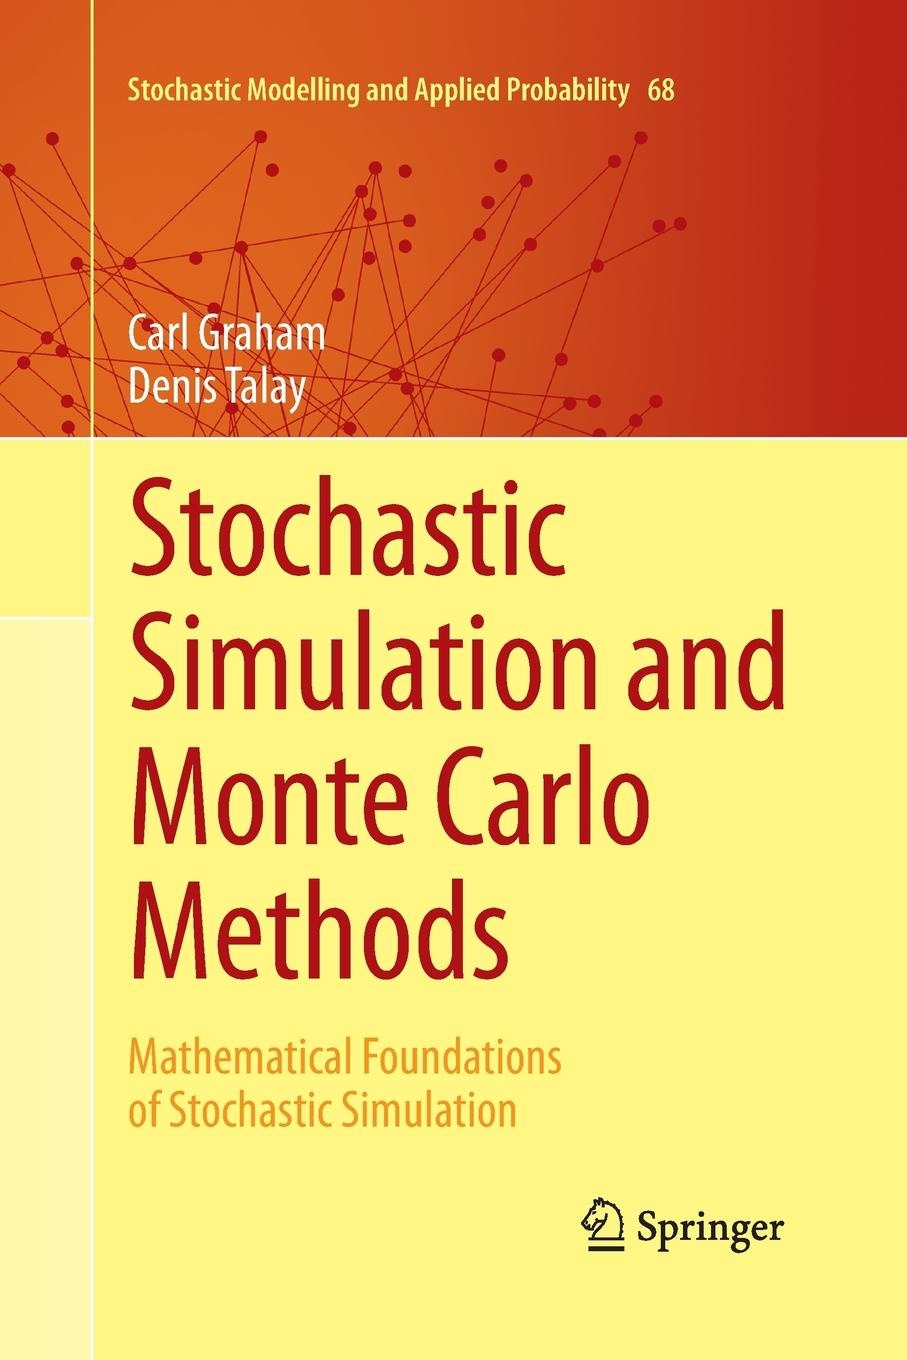 Фото - Carl Graham, Denis Talay Stochastic Simulation and Monte Carlo Methods. Mathematical Foundations of Stochastic Simulation amare melkamu reservoir operation using monte carlo simulation techniques